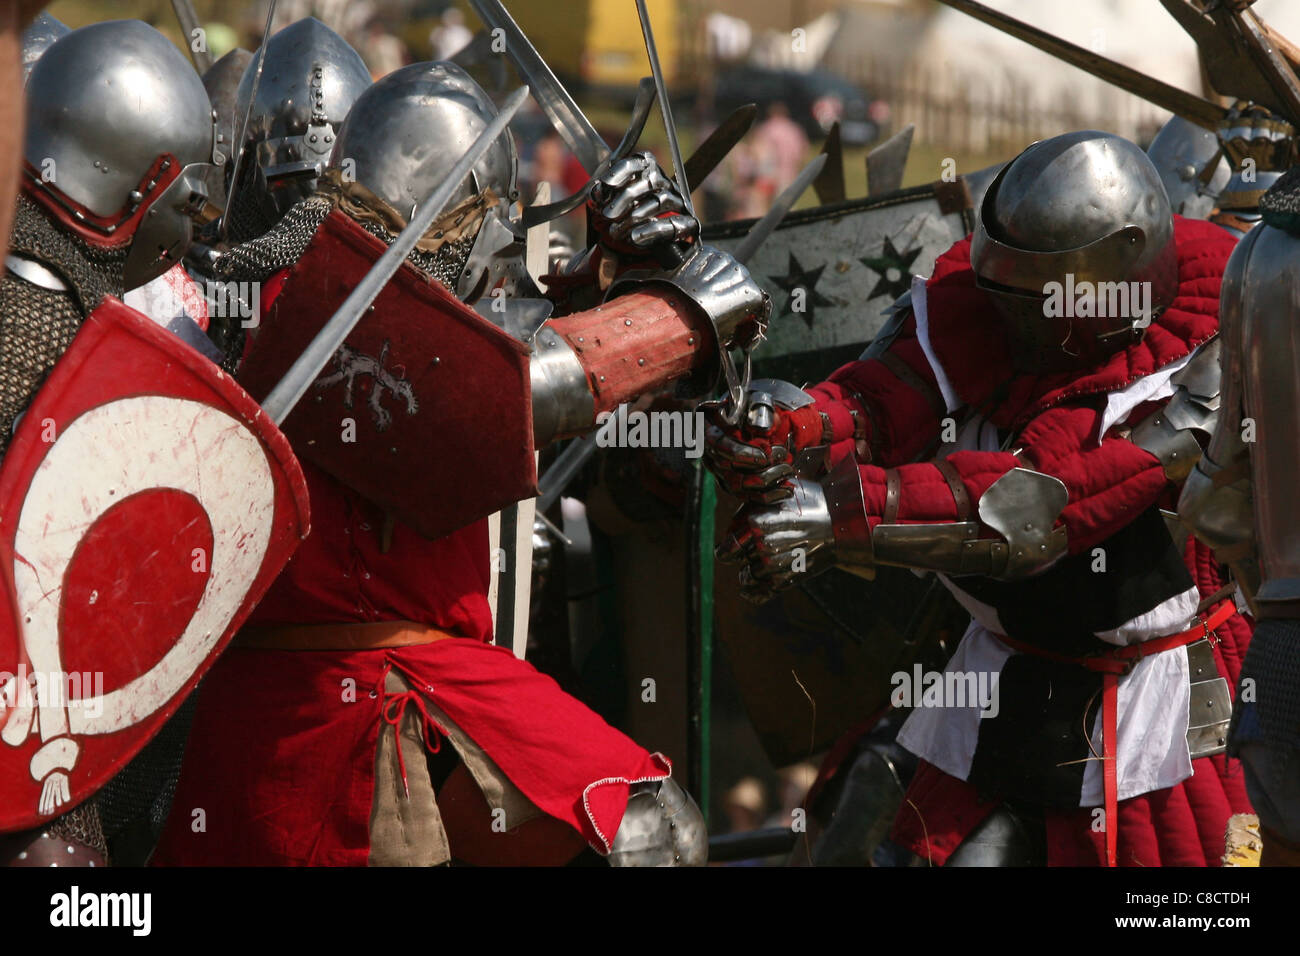 Re-enactment of the Battle of Grunwald (1410) in Northern Poland. Stock Photo